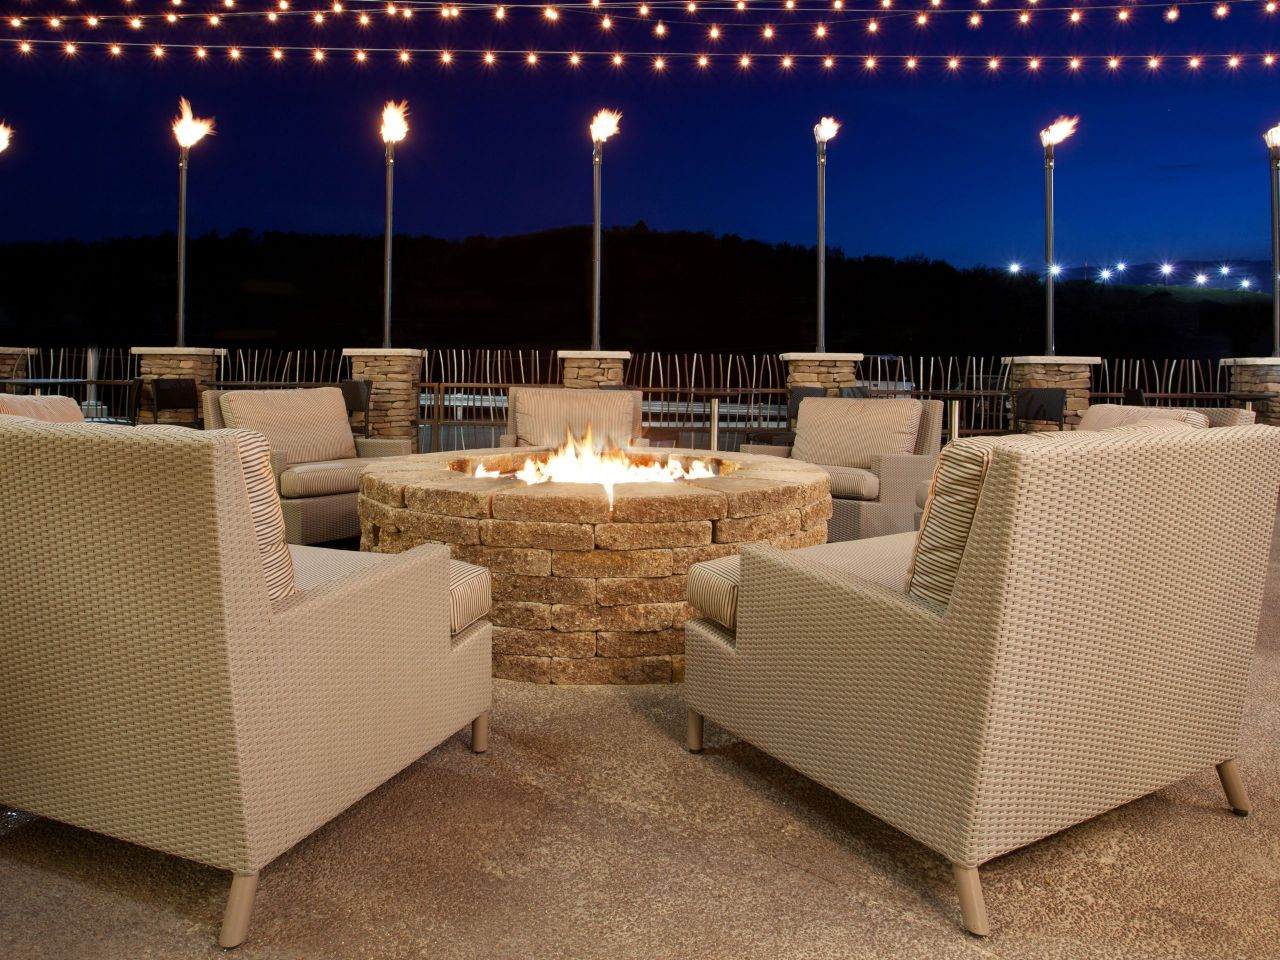 Parlay firepit